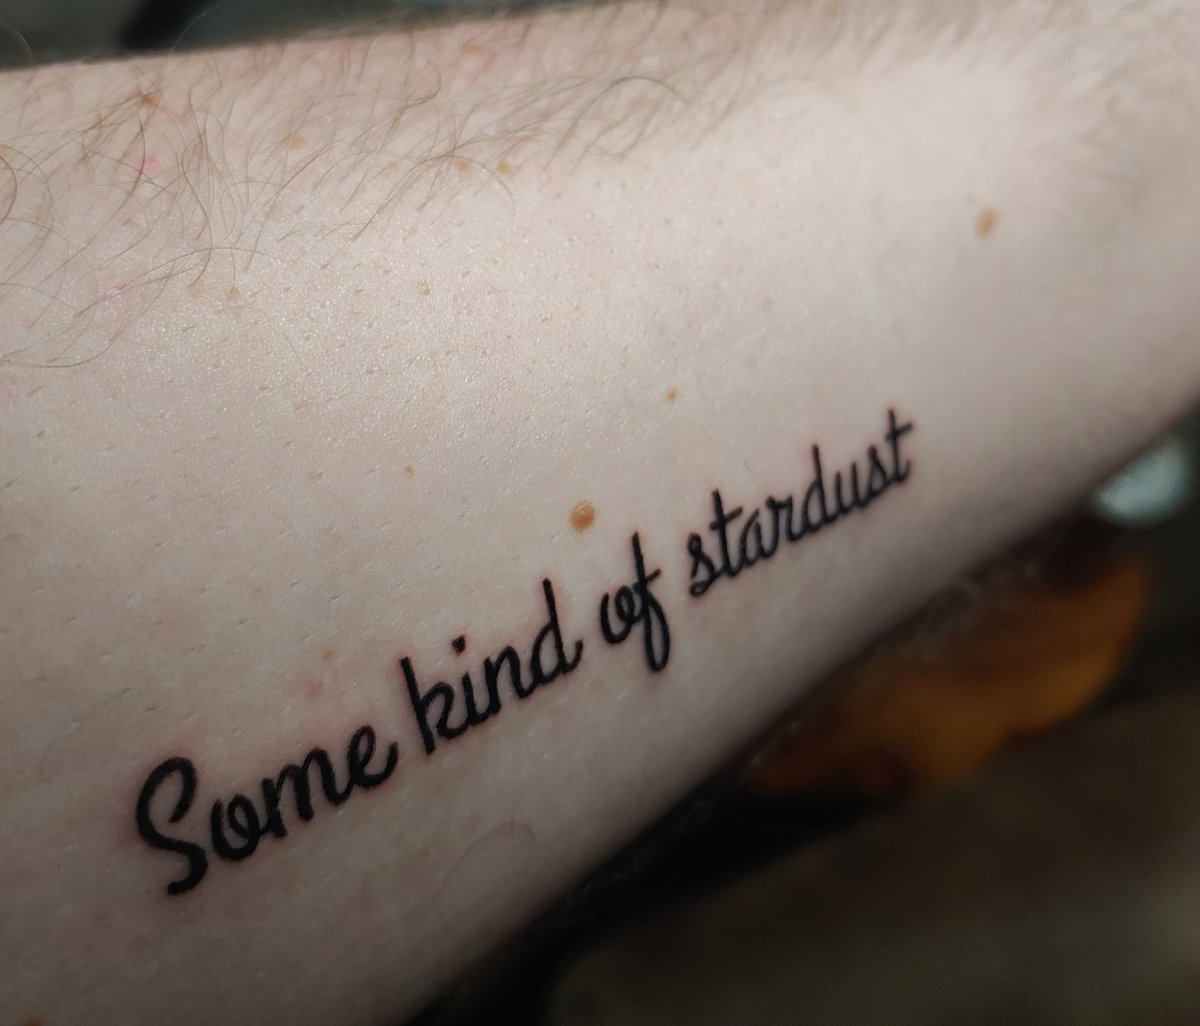 "The Webster Hall Badlands show was so special and inspiring to me, I got a tattoo to remember it forever. The ""Some Kind Of Stardust"" speech particularly moved me. I am forever grateful to Halsey and everyone on here. Halsey has built a whole vibrant community with her art."